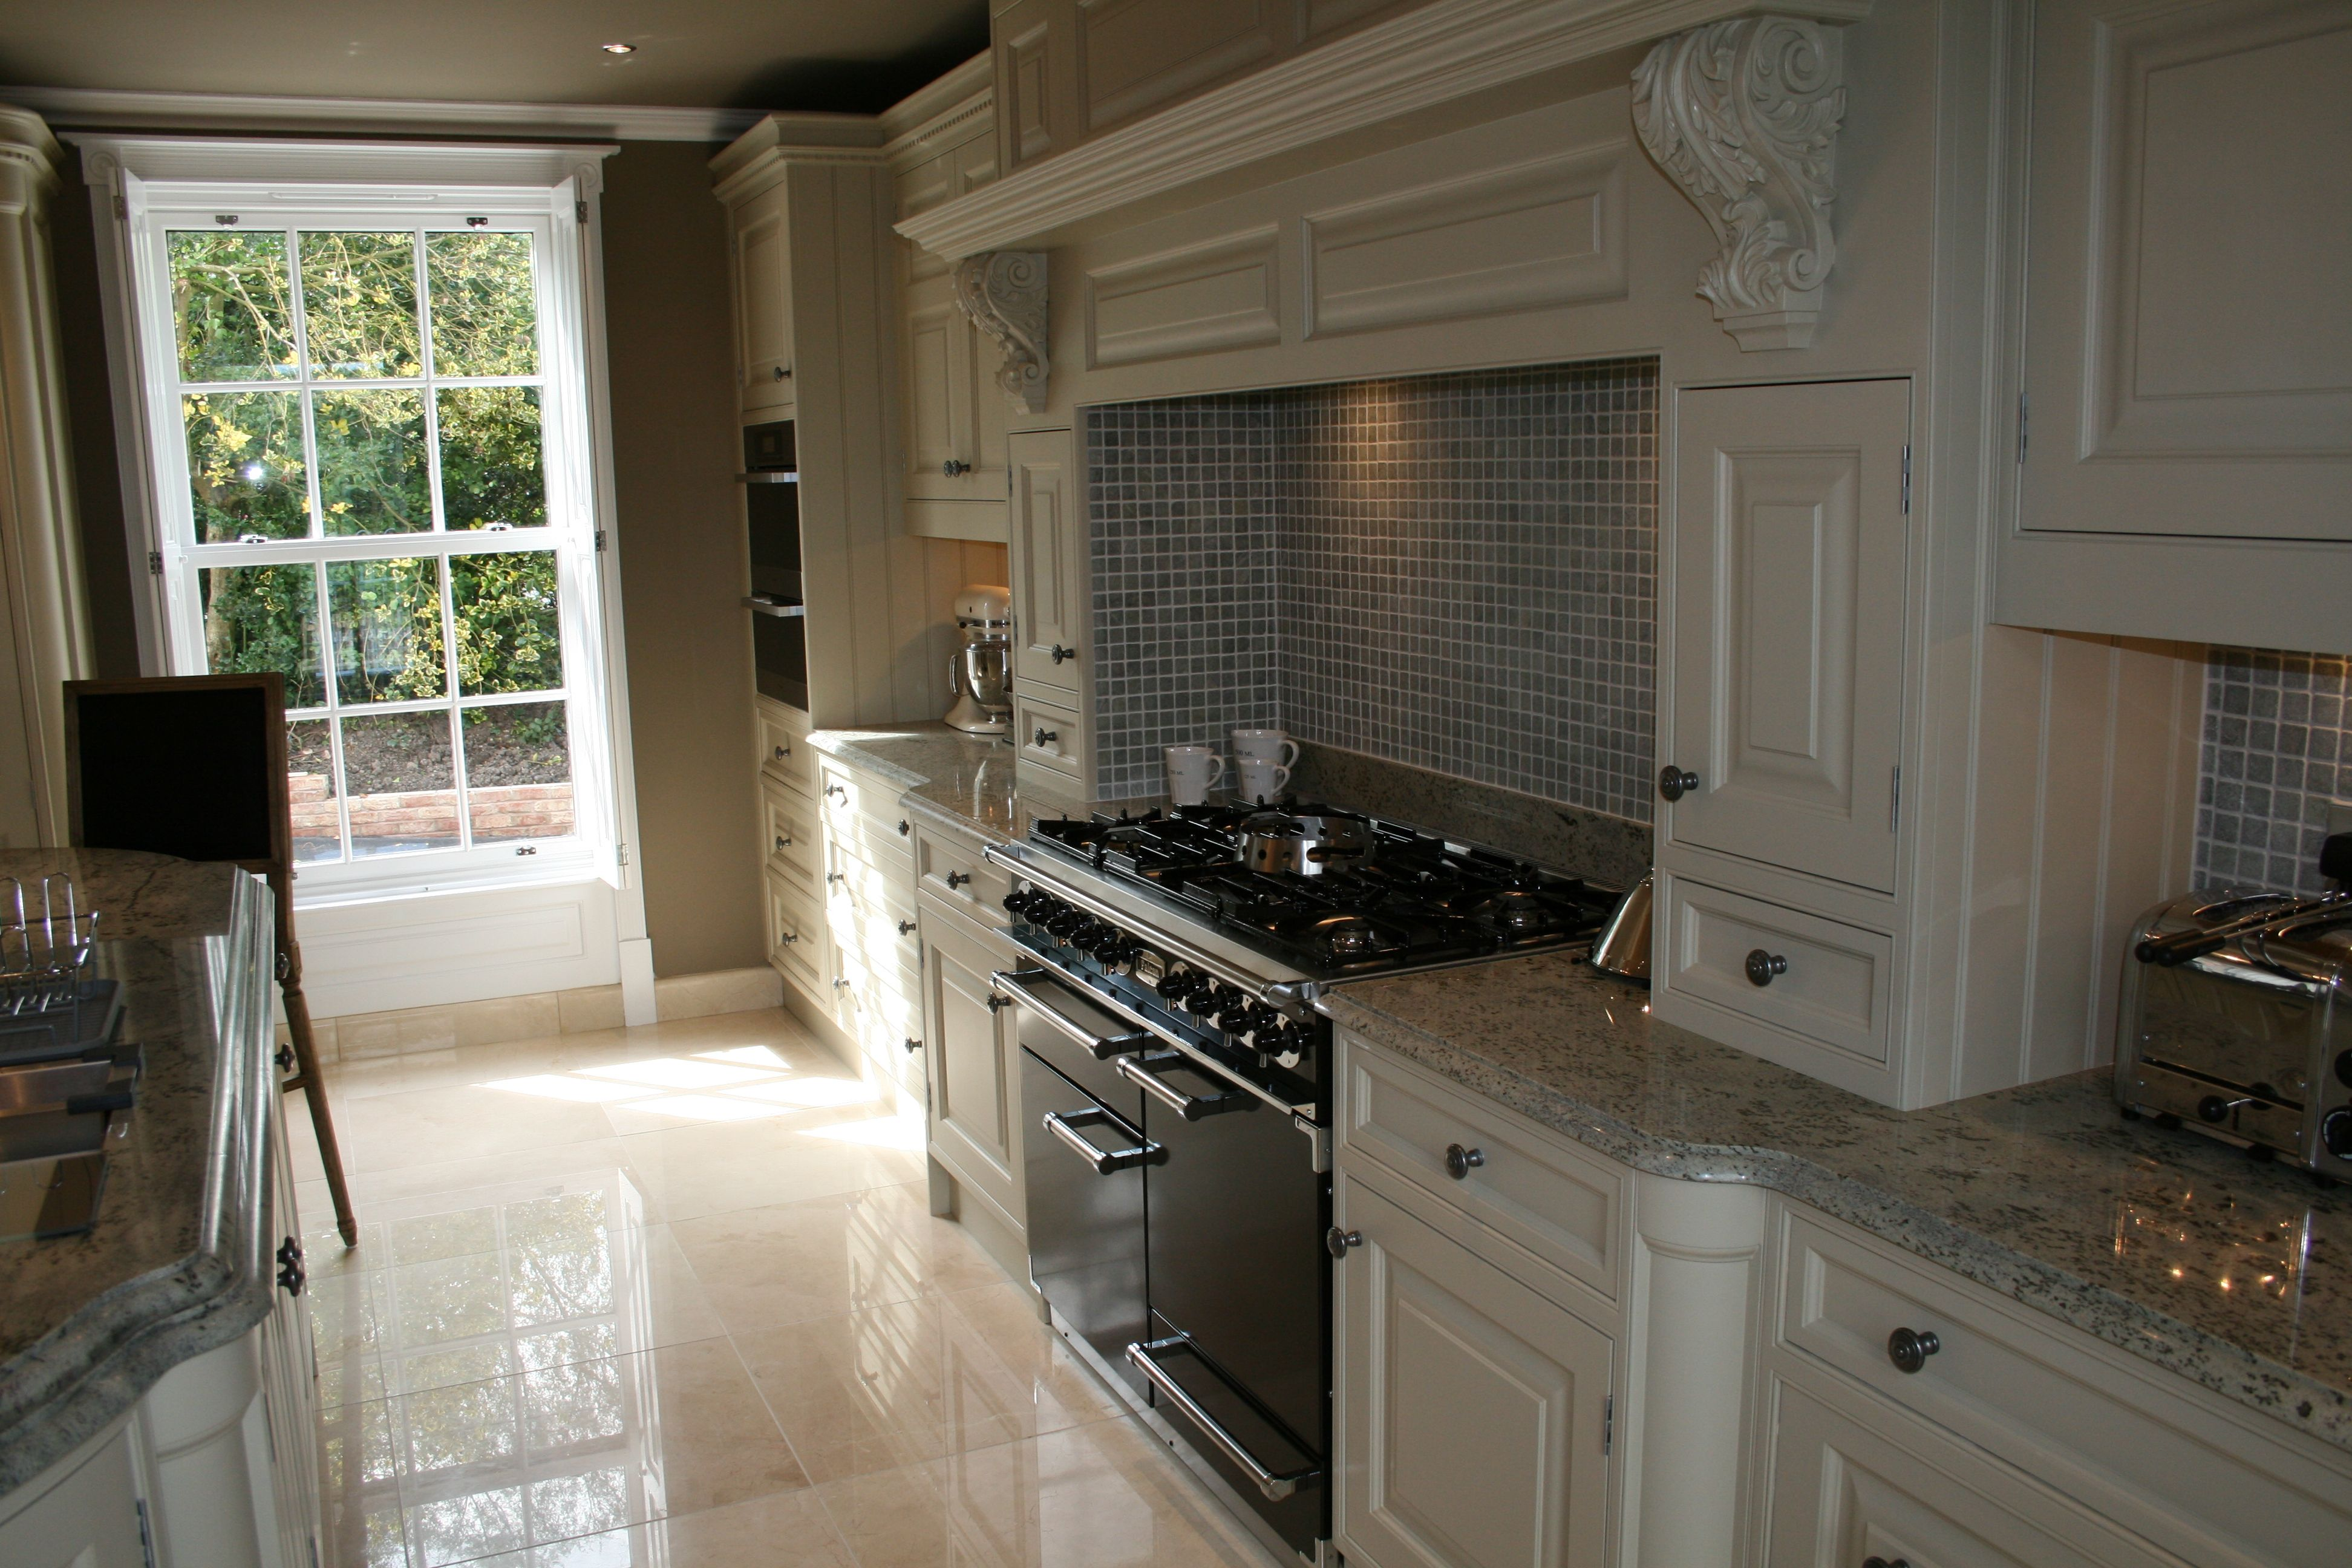 Contemporary style painted in-frame kitchen from OakleighCabinets.co.uk